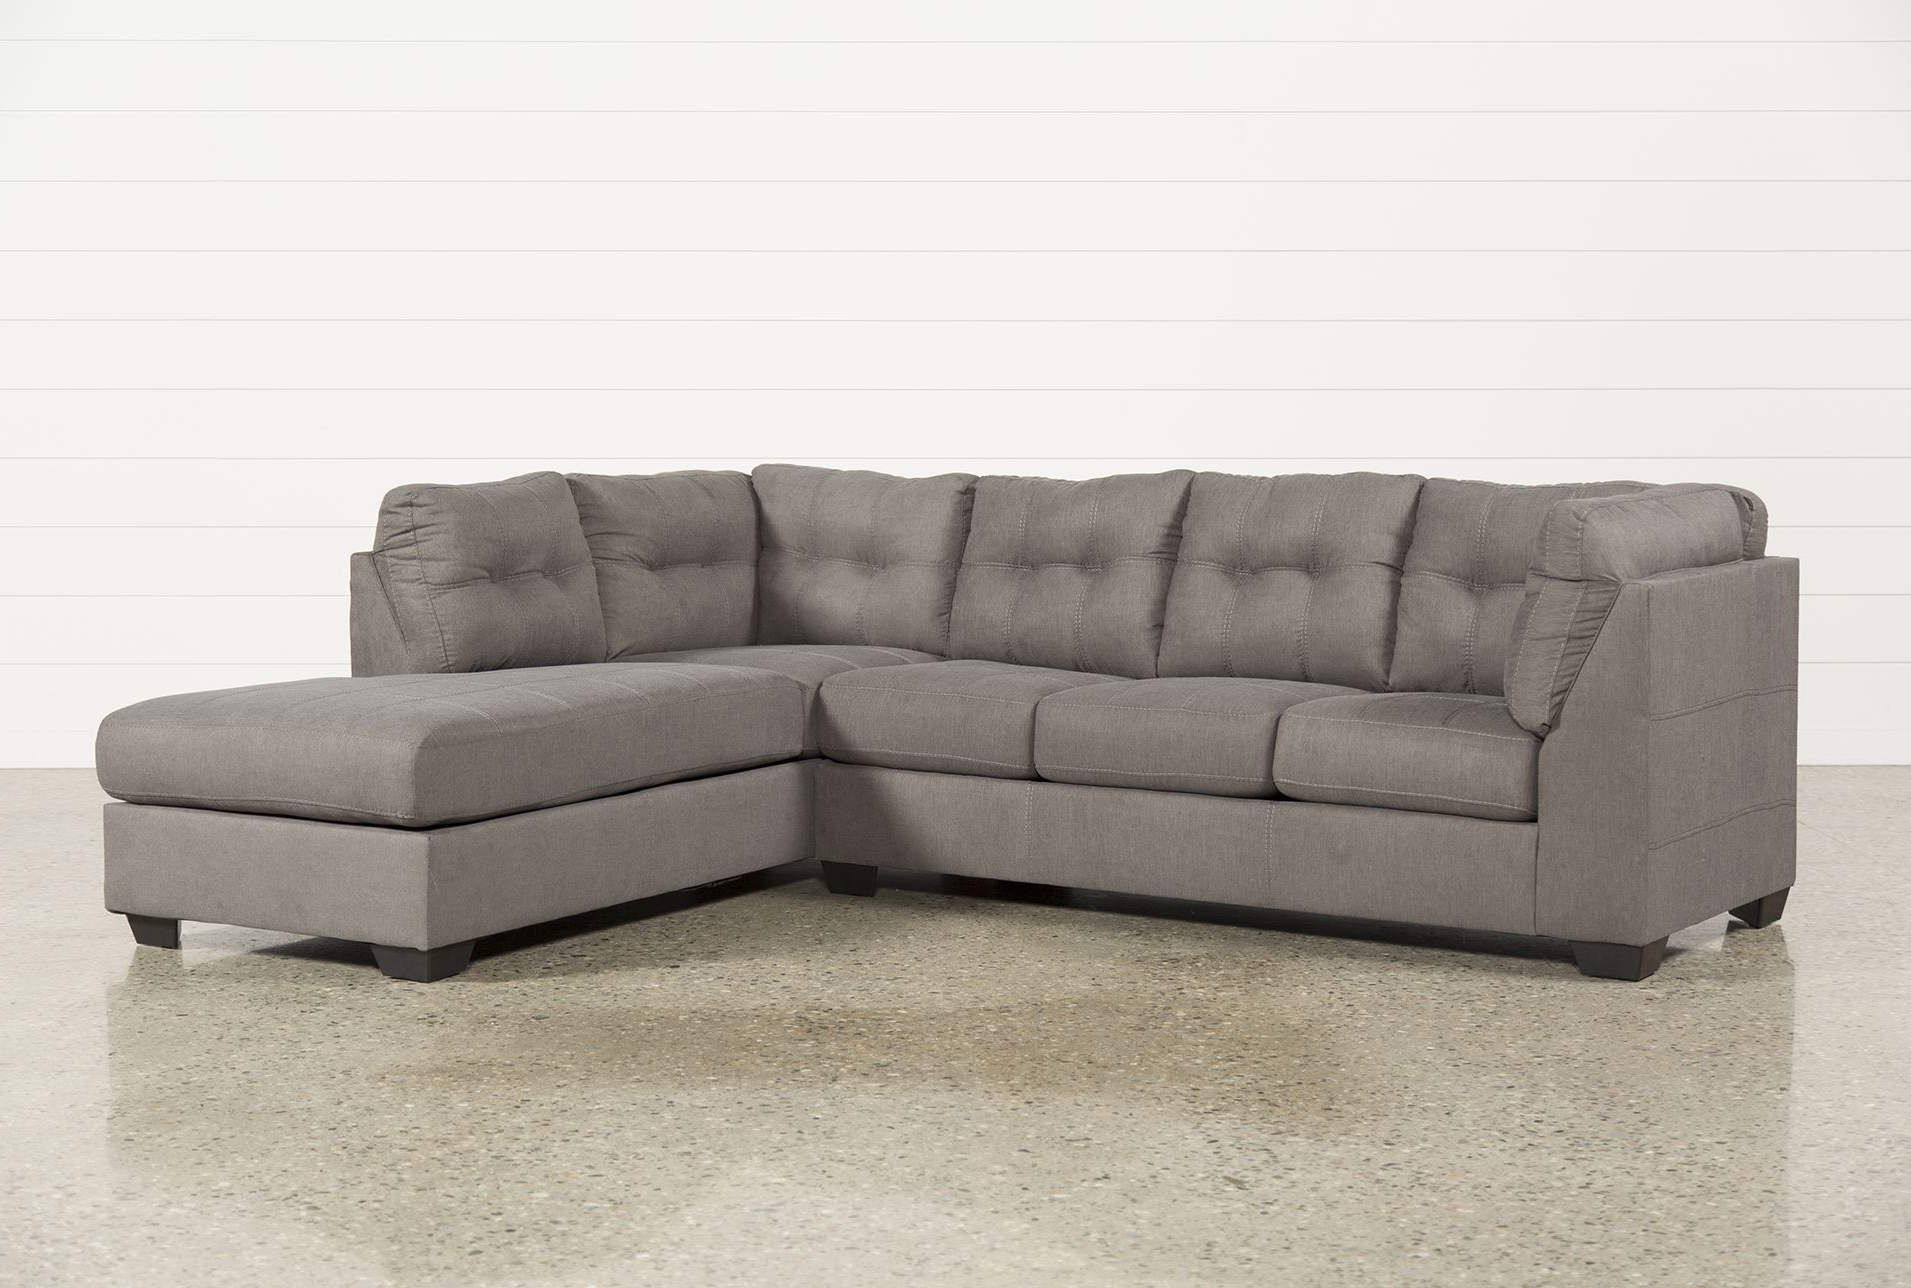 Couches With Chaise Inside Preferred Perfect Grey Sectional Sofa With Chaise 18 On Sofas And Couches (View 6 of 15)